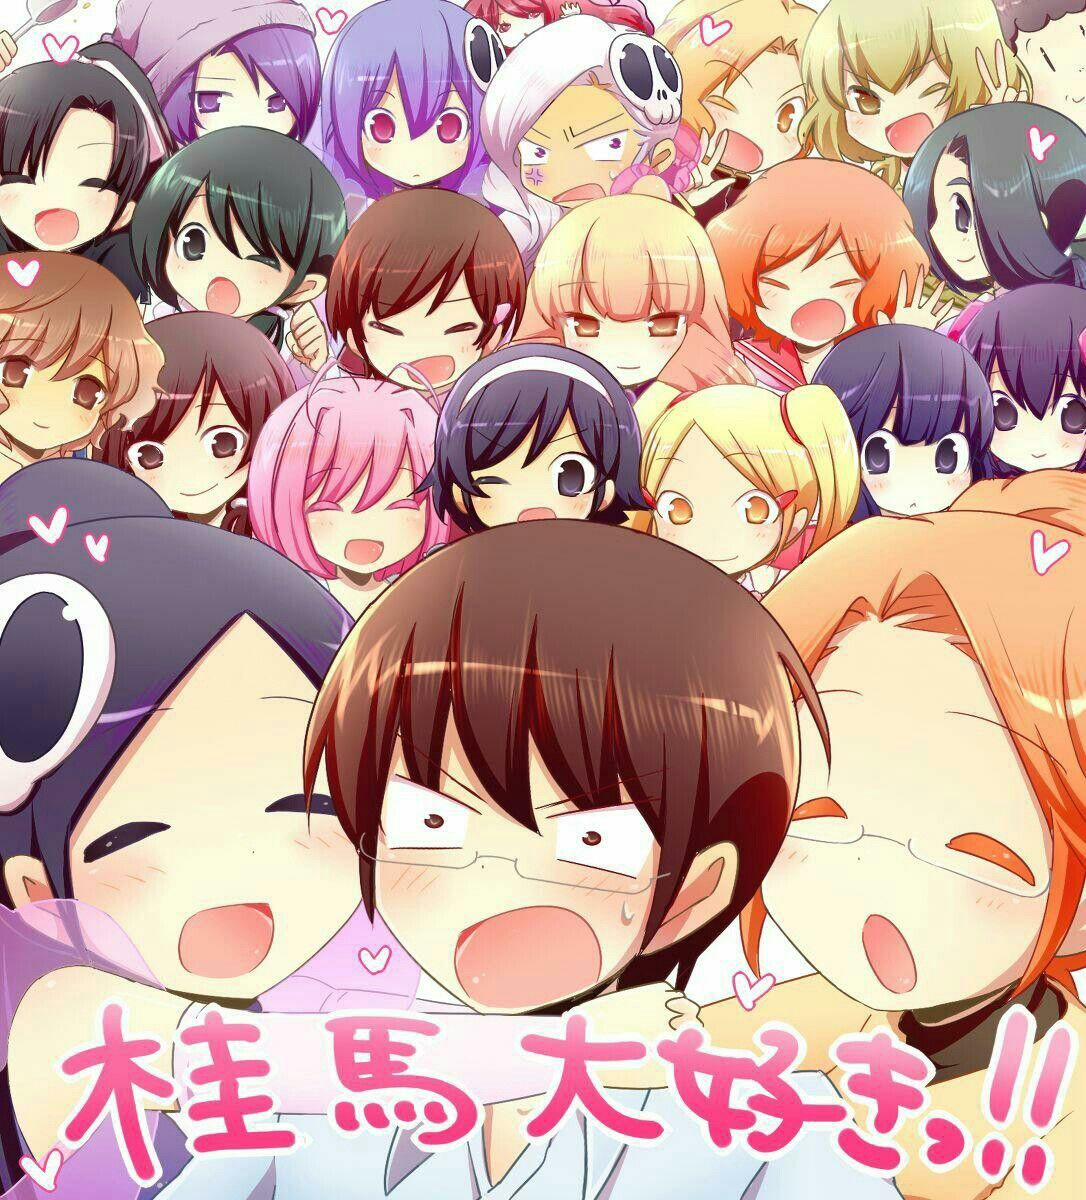 20 World God Only Know Images Anime Kami God